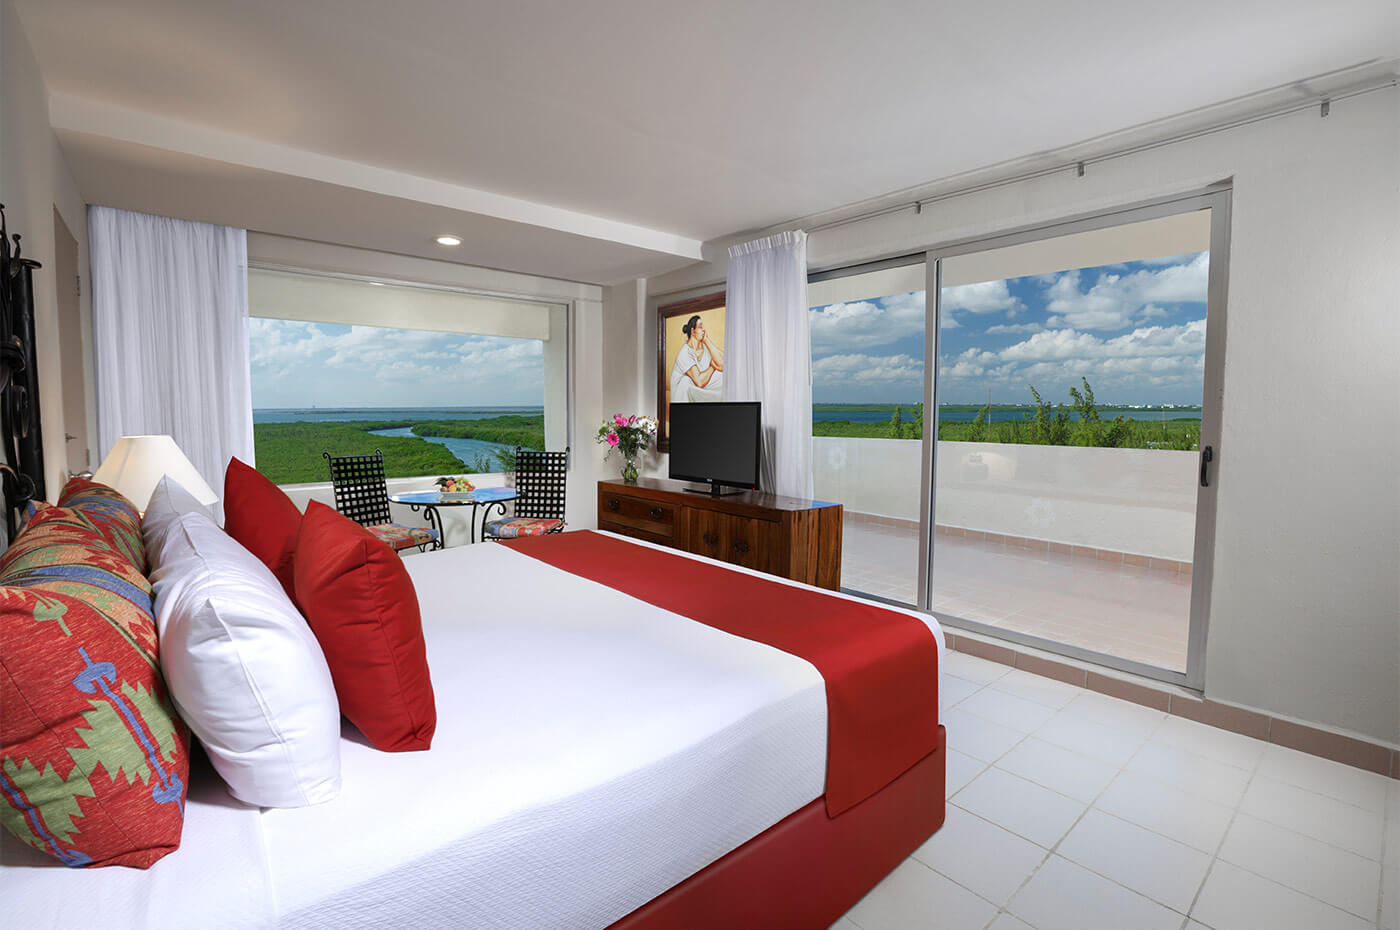 Room Lagoon view with King Size bed and beautiful view in Oasis Palm Hotel